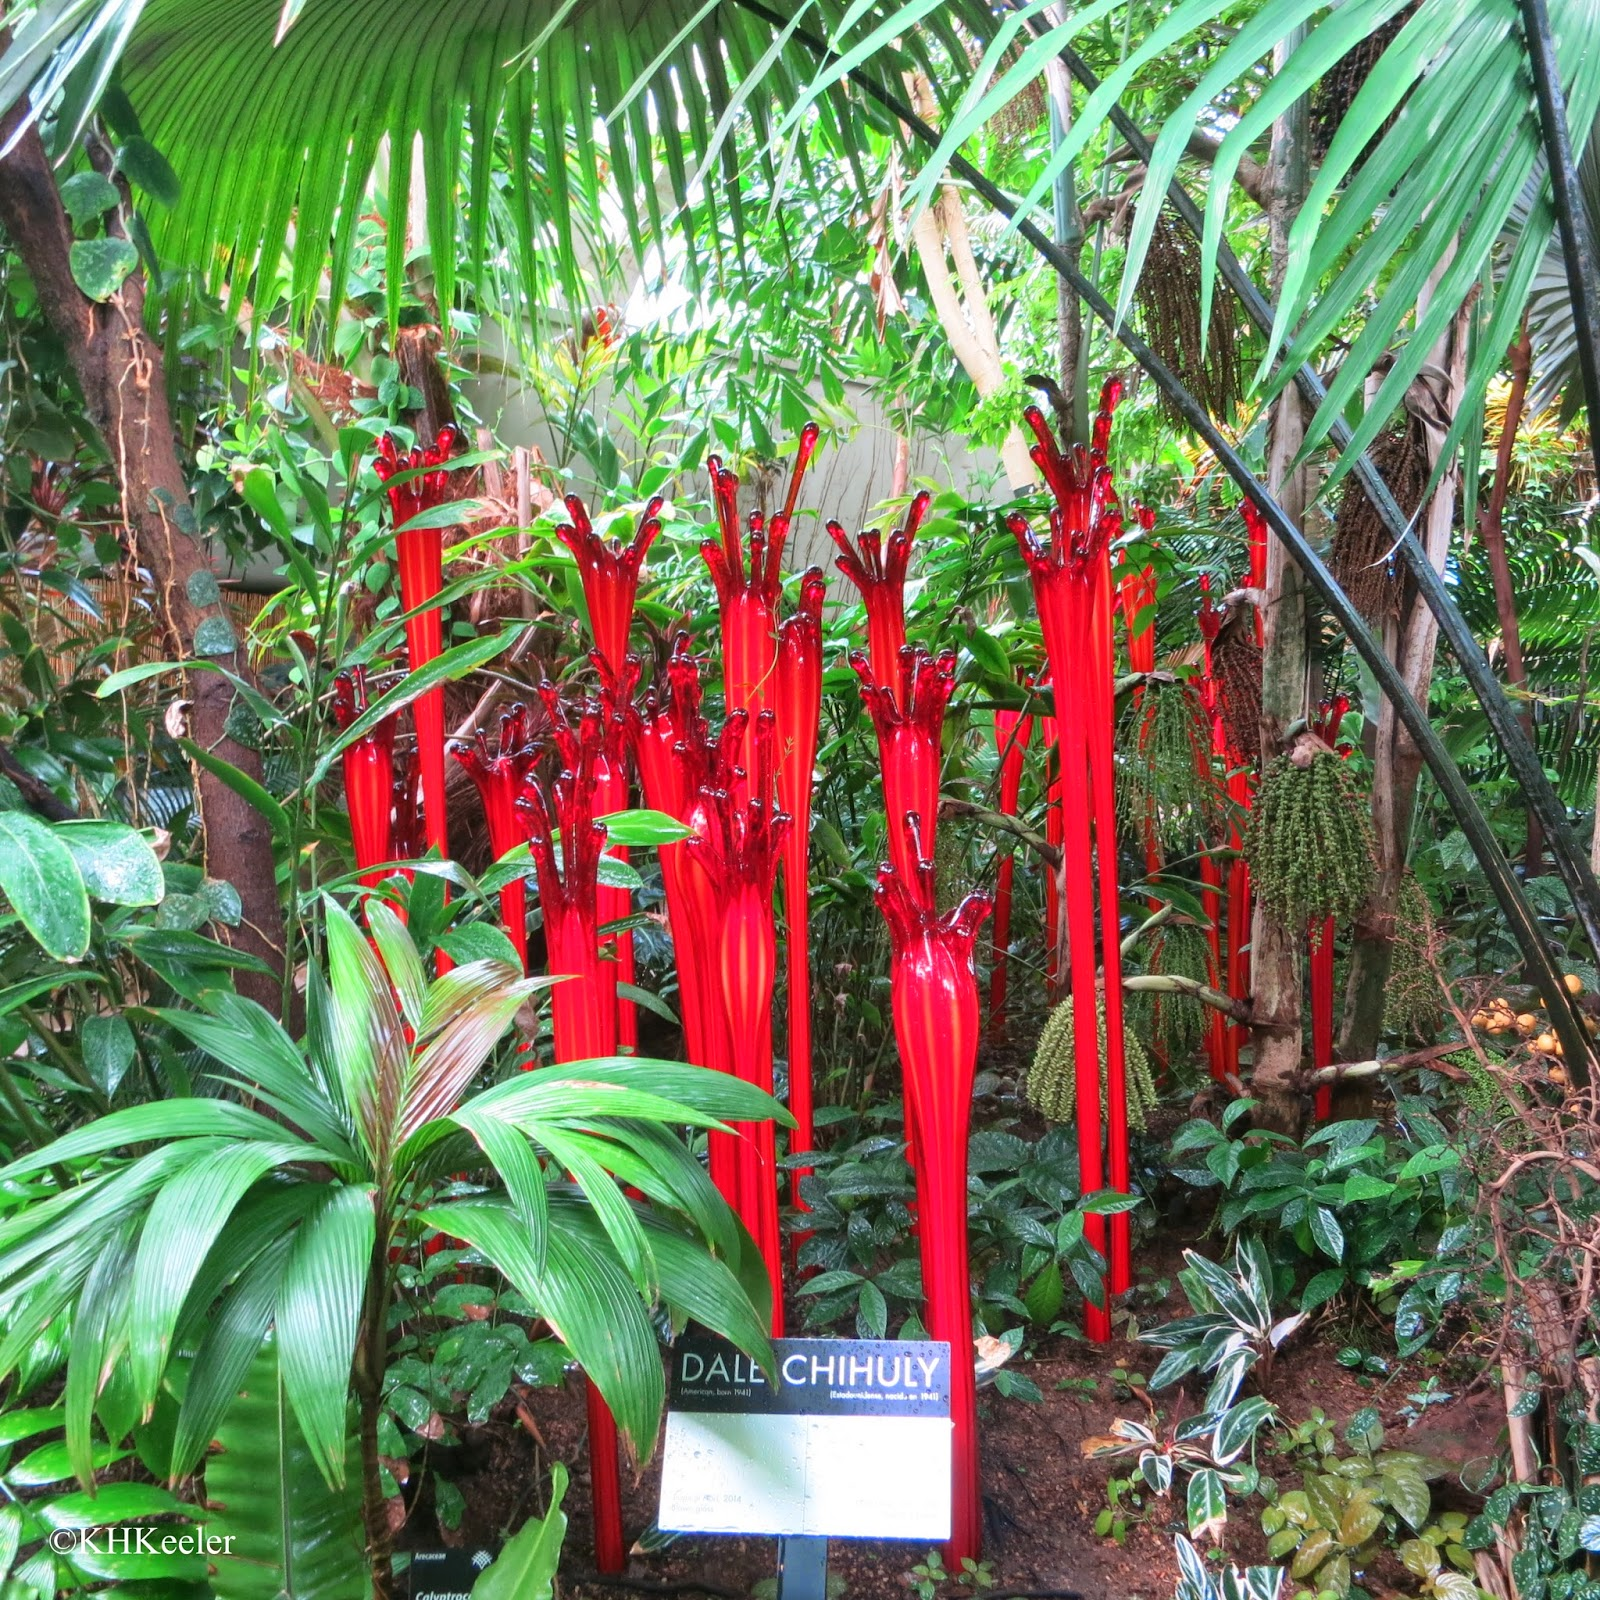 Chihuly glass, Denver Botanic Garden